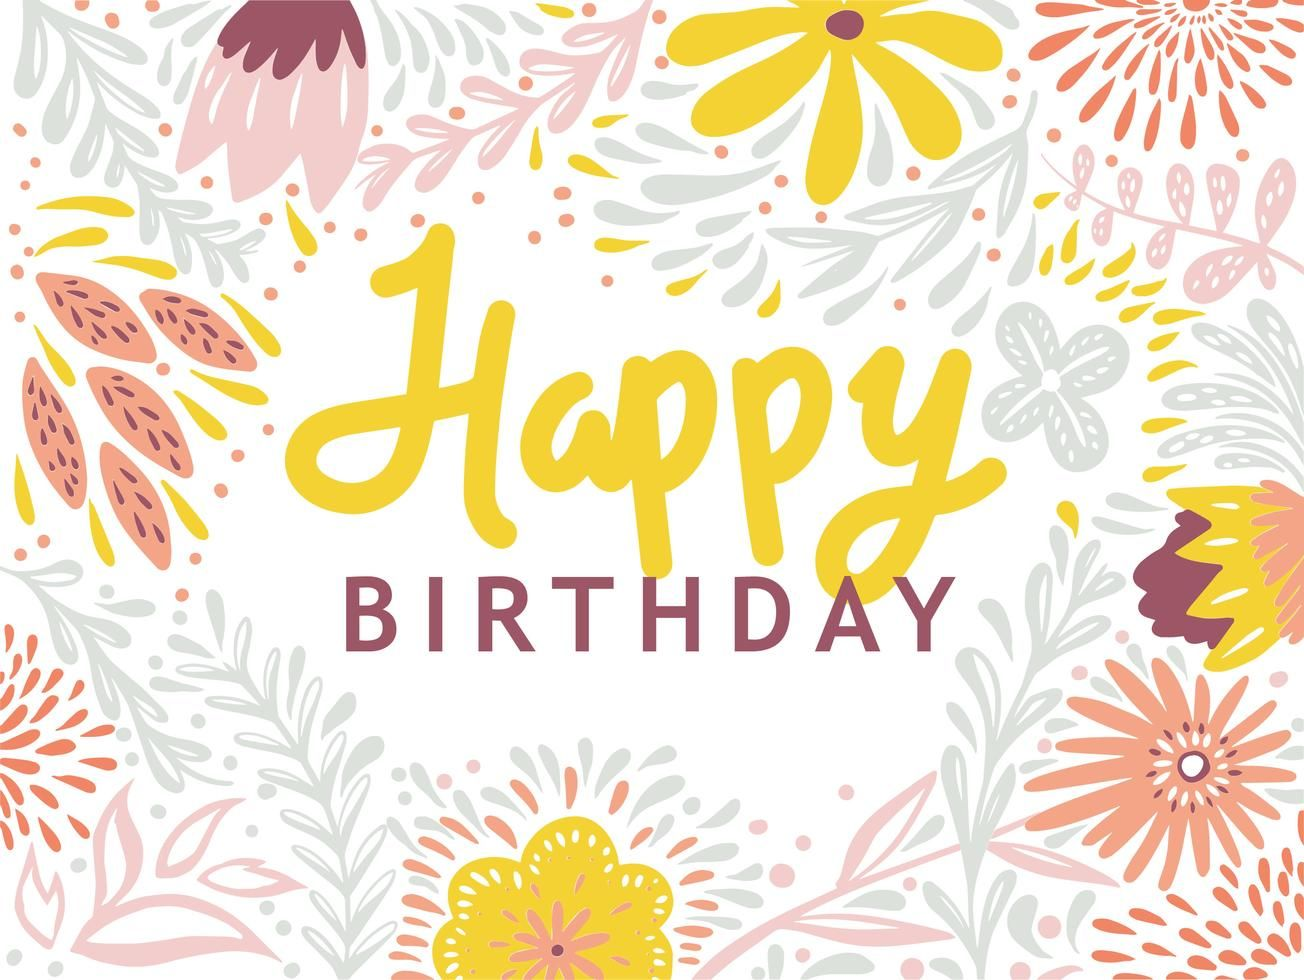 Free Download Happy Birthday Typography Floral Greetings Card Template In 2020 Happy Birthday Typography Birthday Typography Greeting Card Template